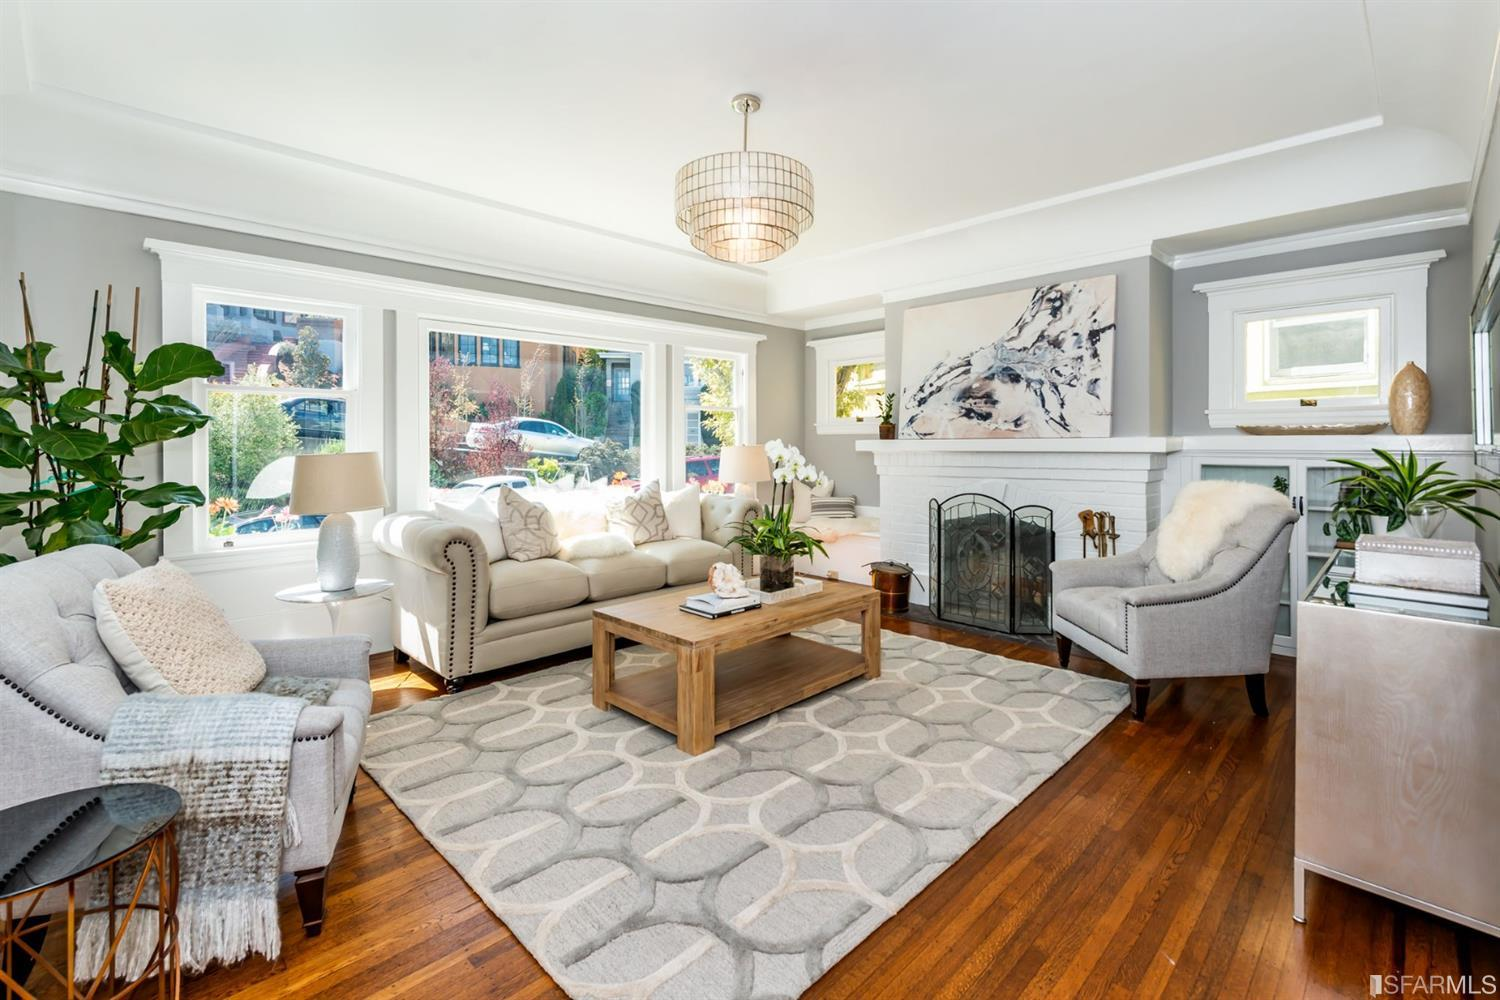 37 Ashbury Terrace  4 Bed | 3.5 bath | Sold for $3,250,000